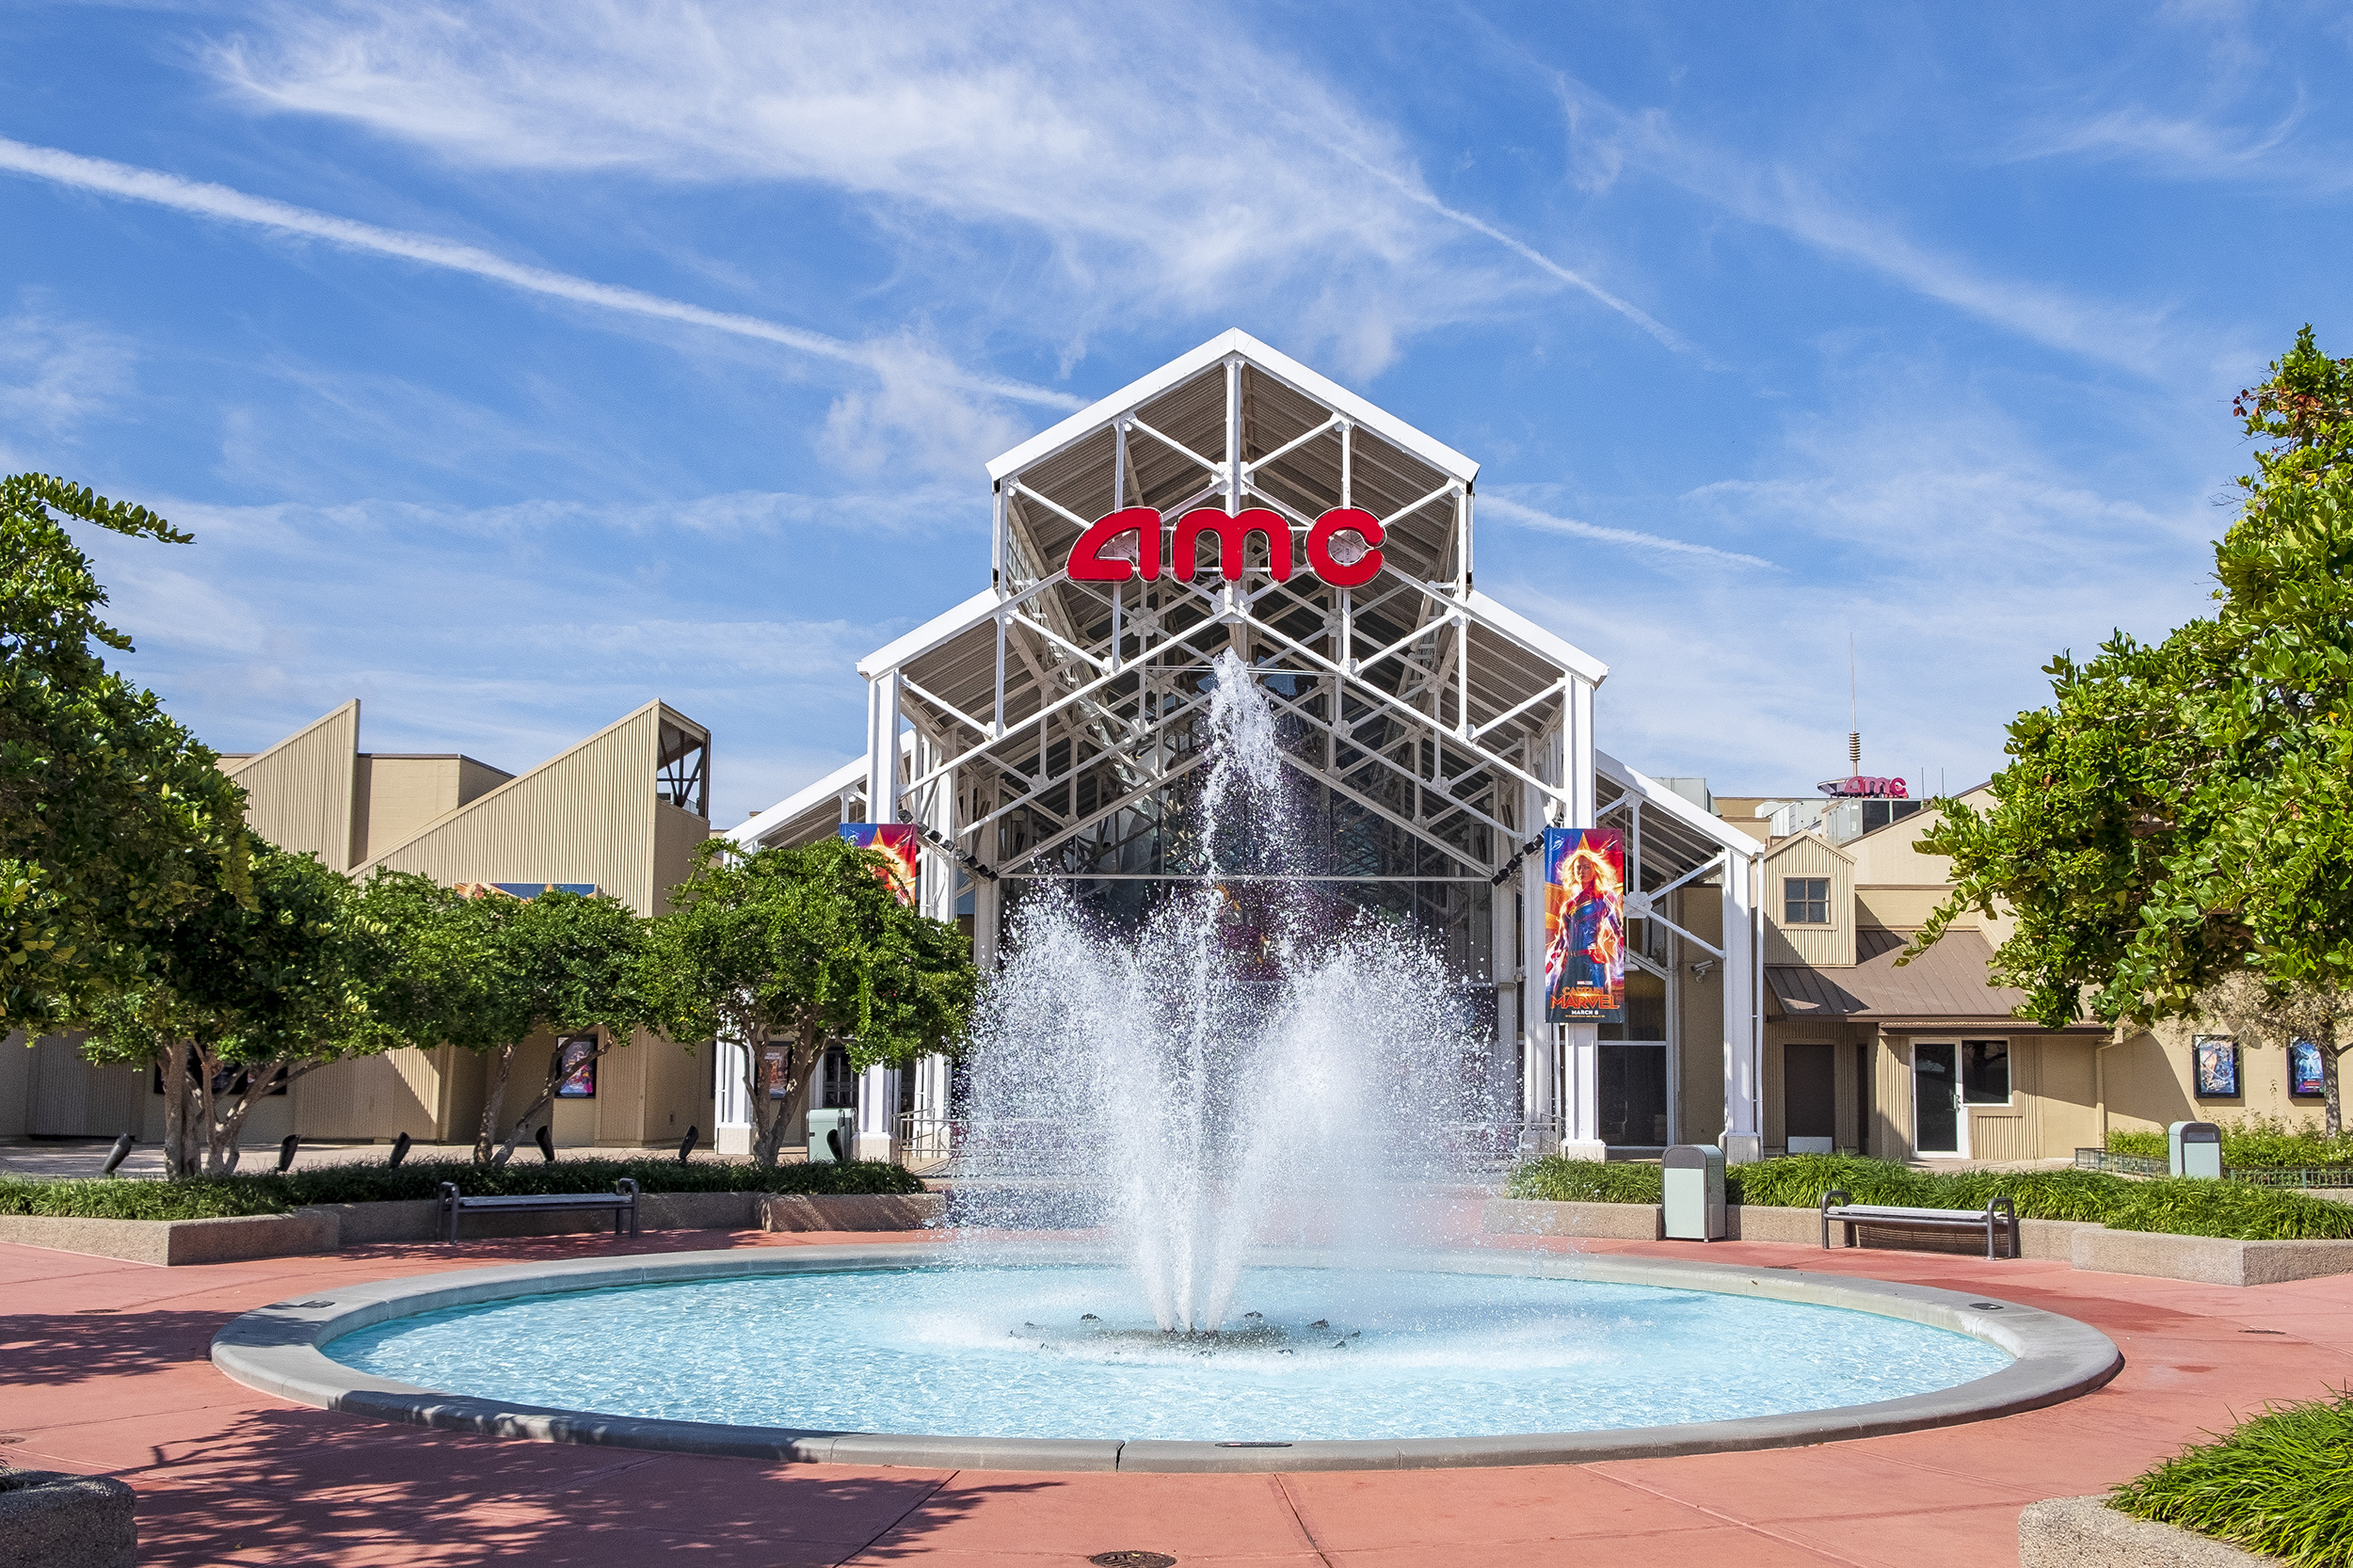 Disney Springs AMC